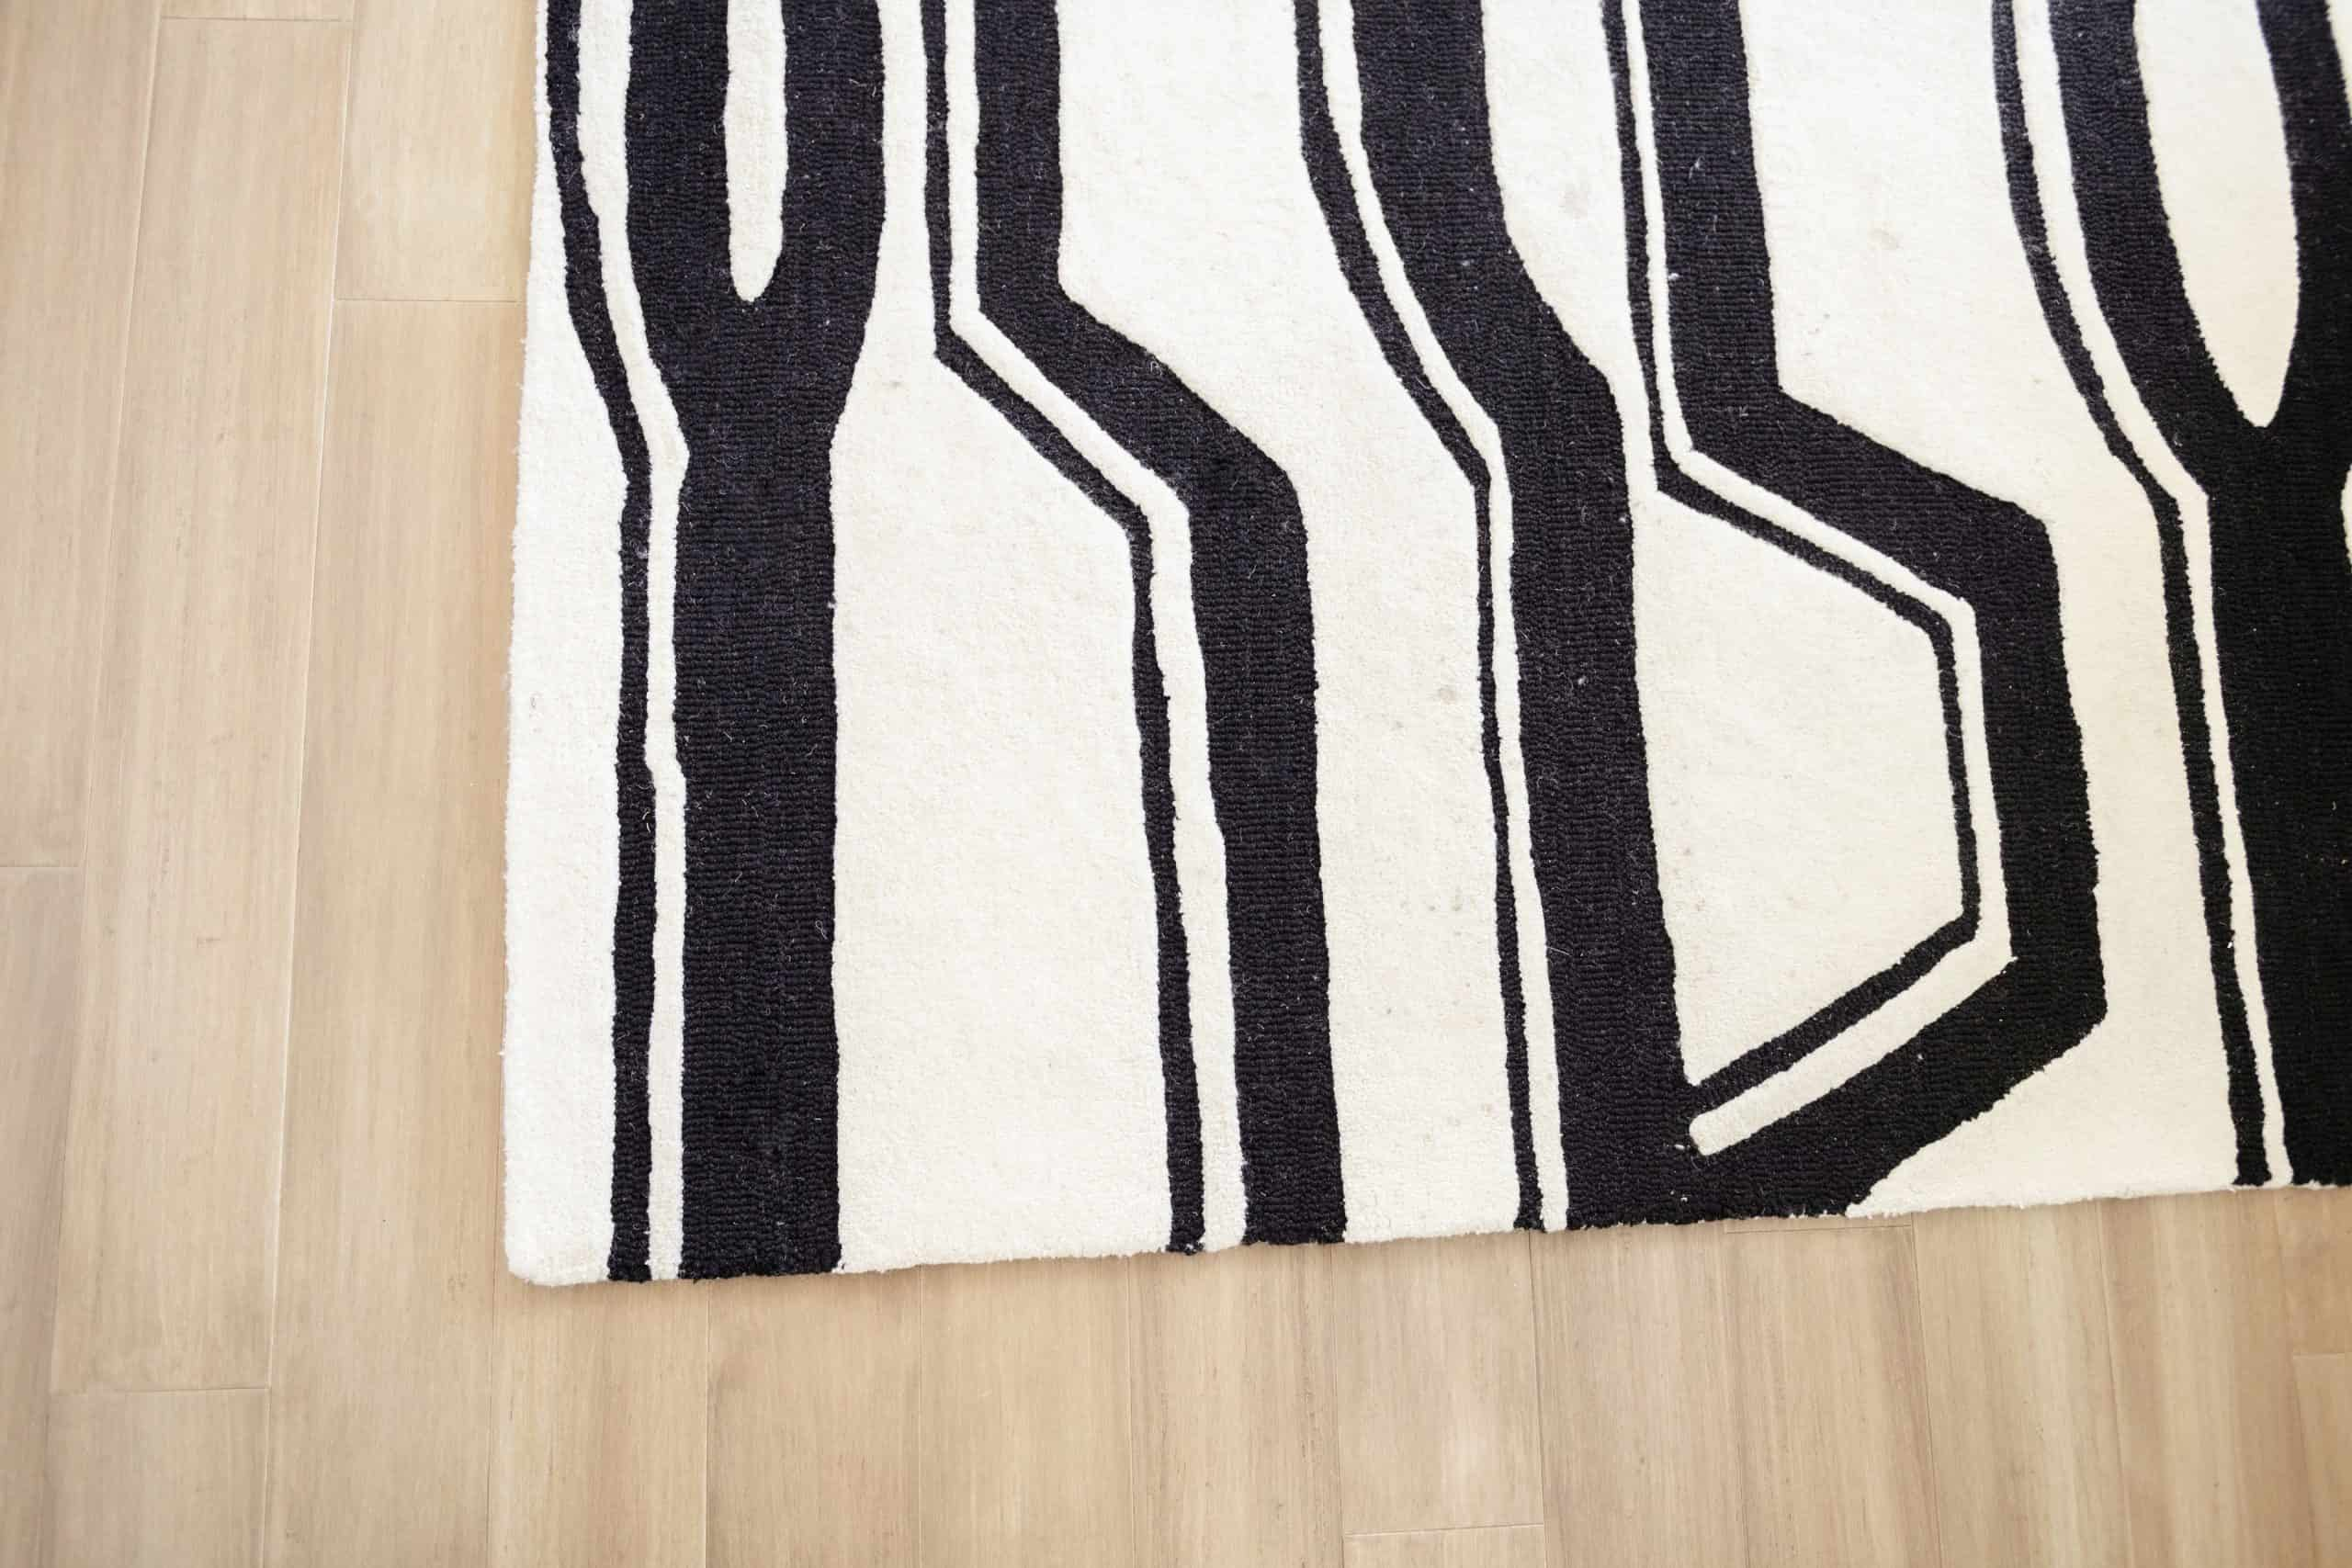 Wood Floor Installation by popular Dallas life and style blog, Glamorous Versatility: image of a black and white rug on a light wood floor.